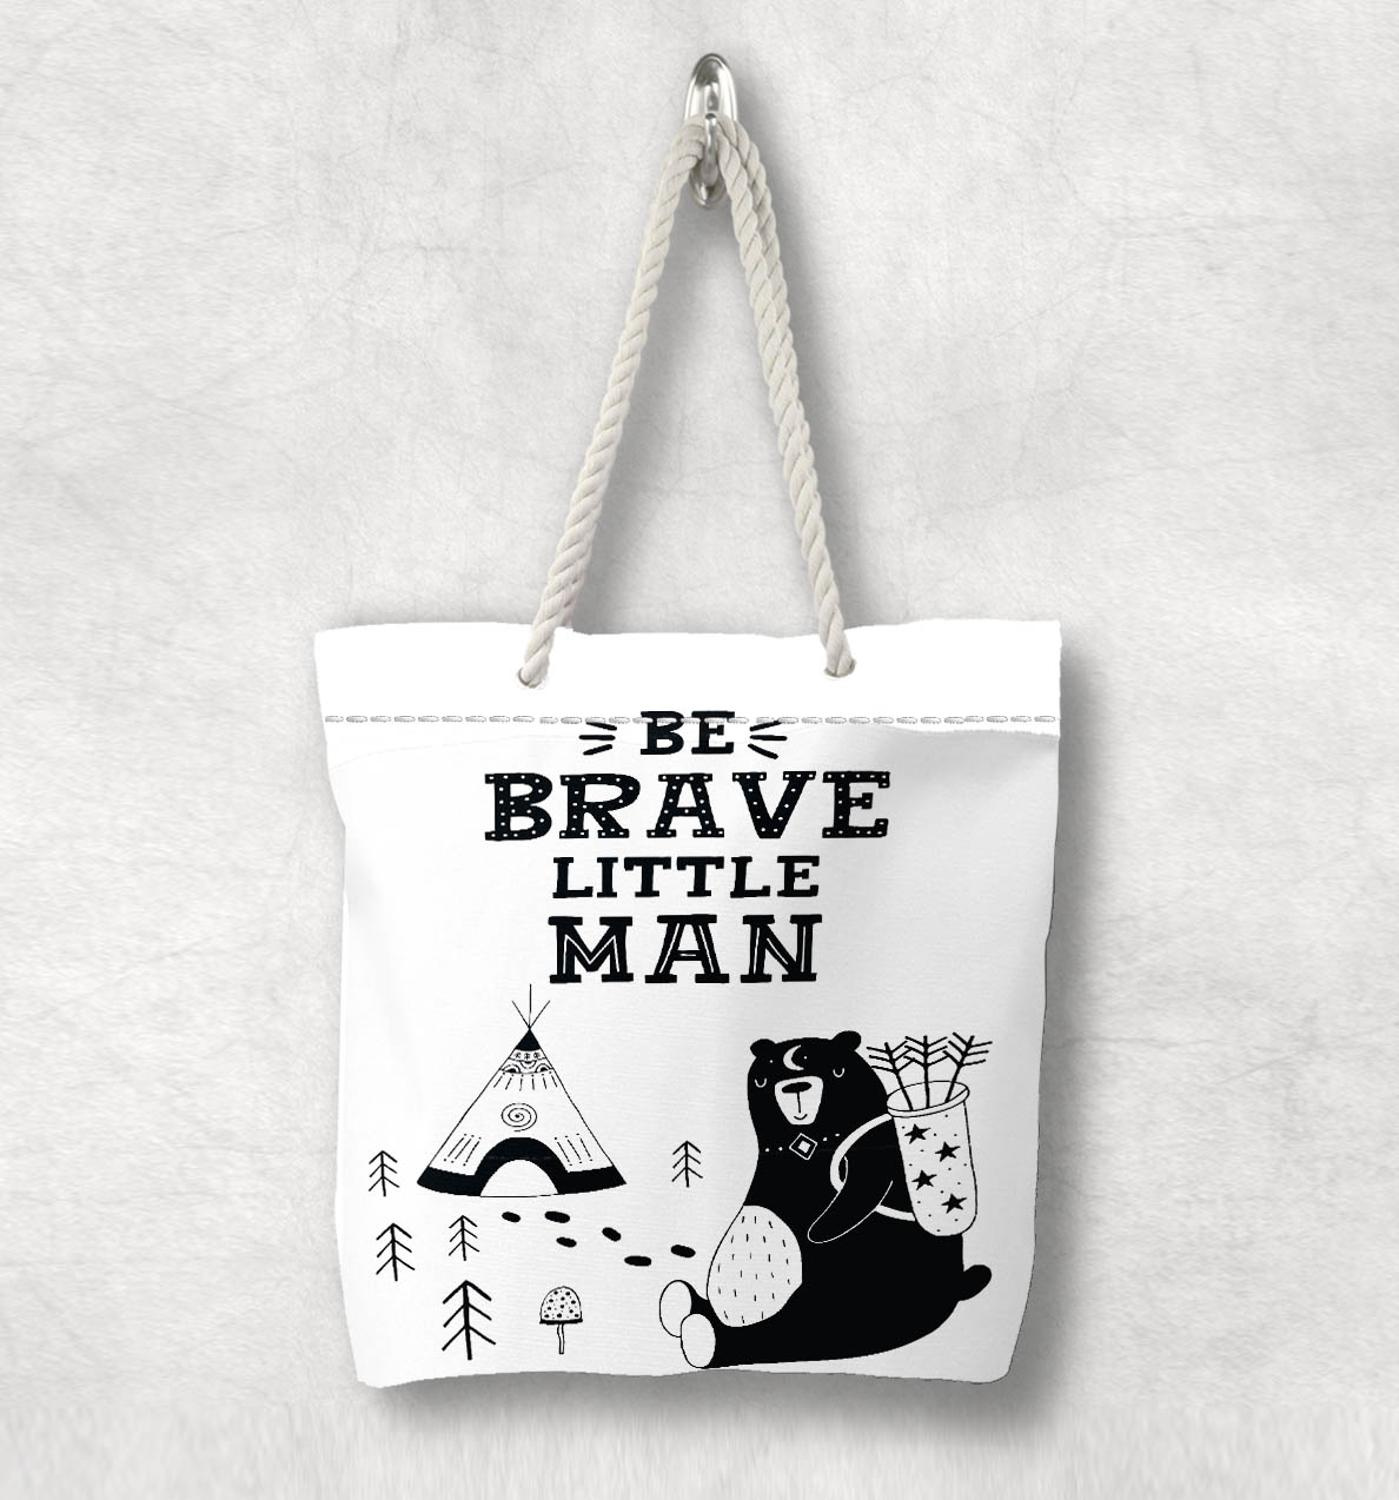 Else Black White Brave Man Bears Nordic Scandinavian White Rope Handle Canvas Bag  Cartoon Print Zippered Tote Bag Shoulder Bag